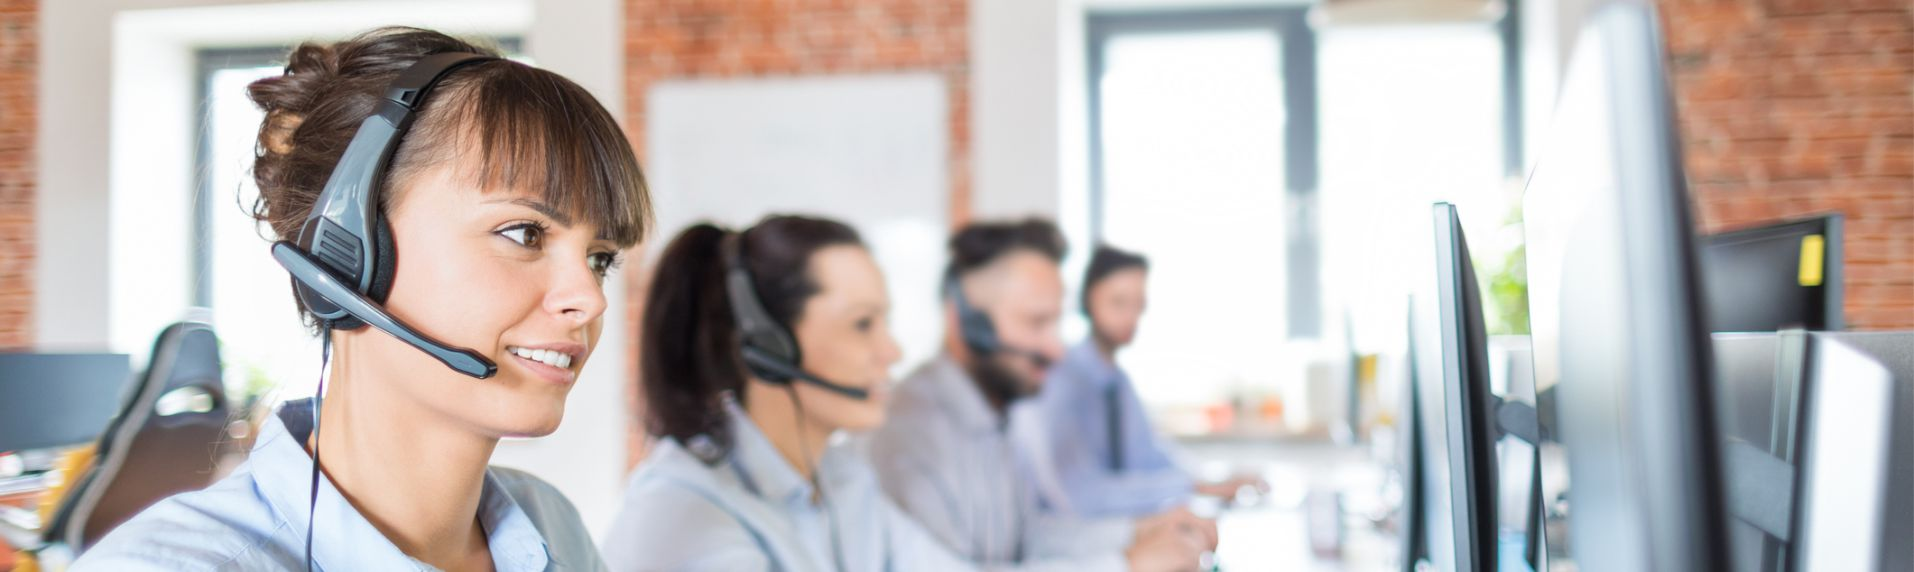 Employees working at a call center